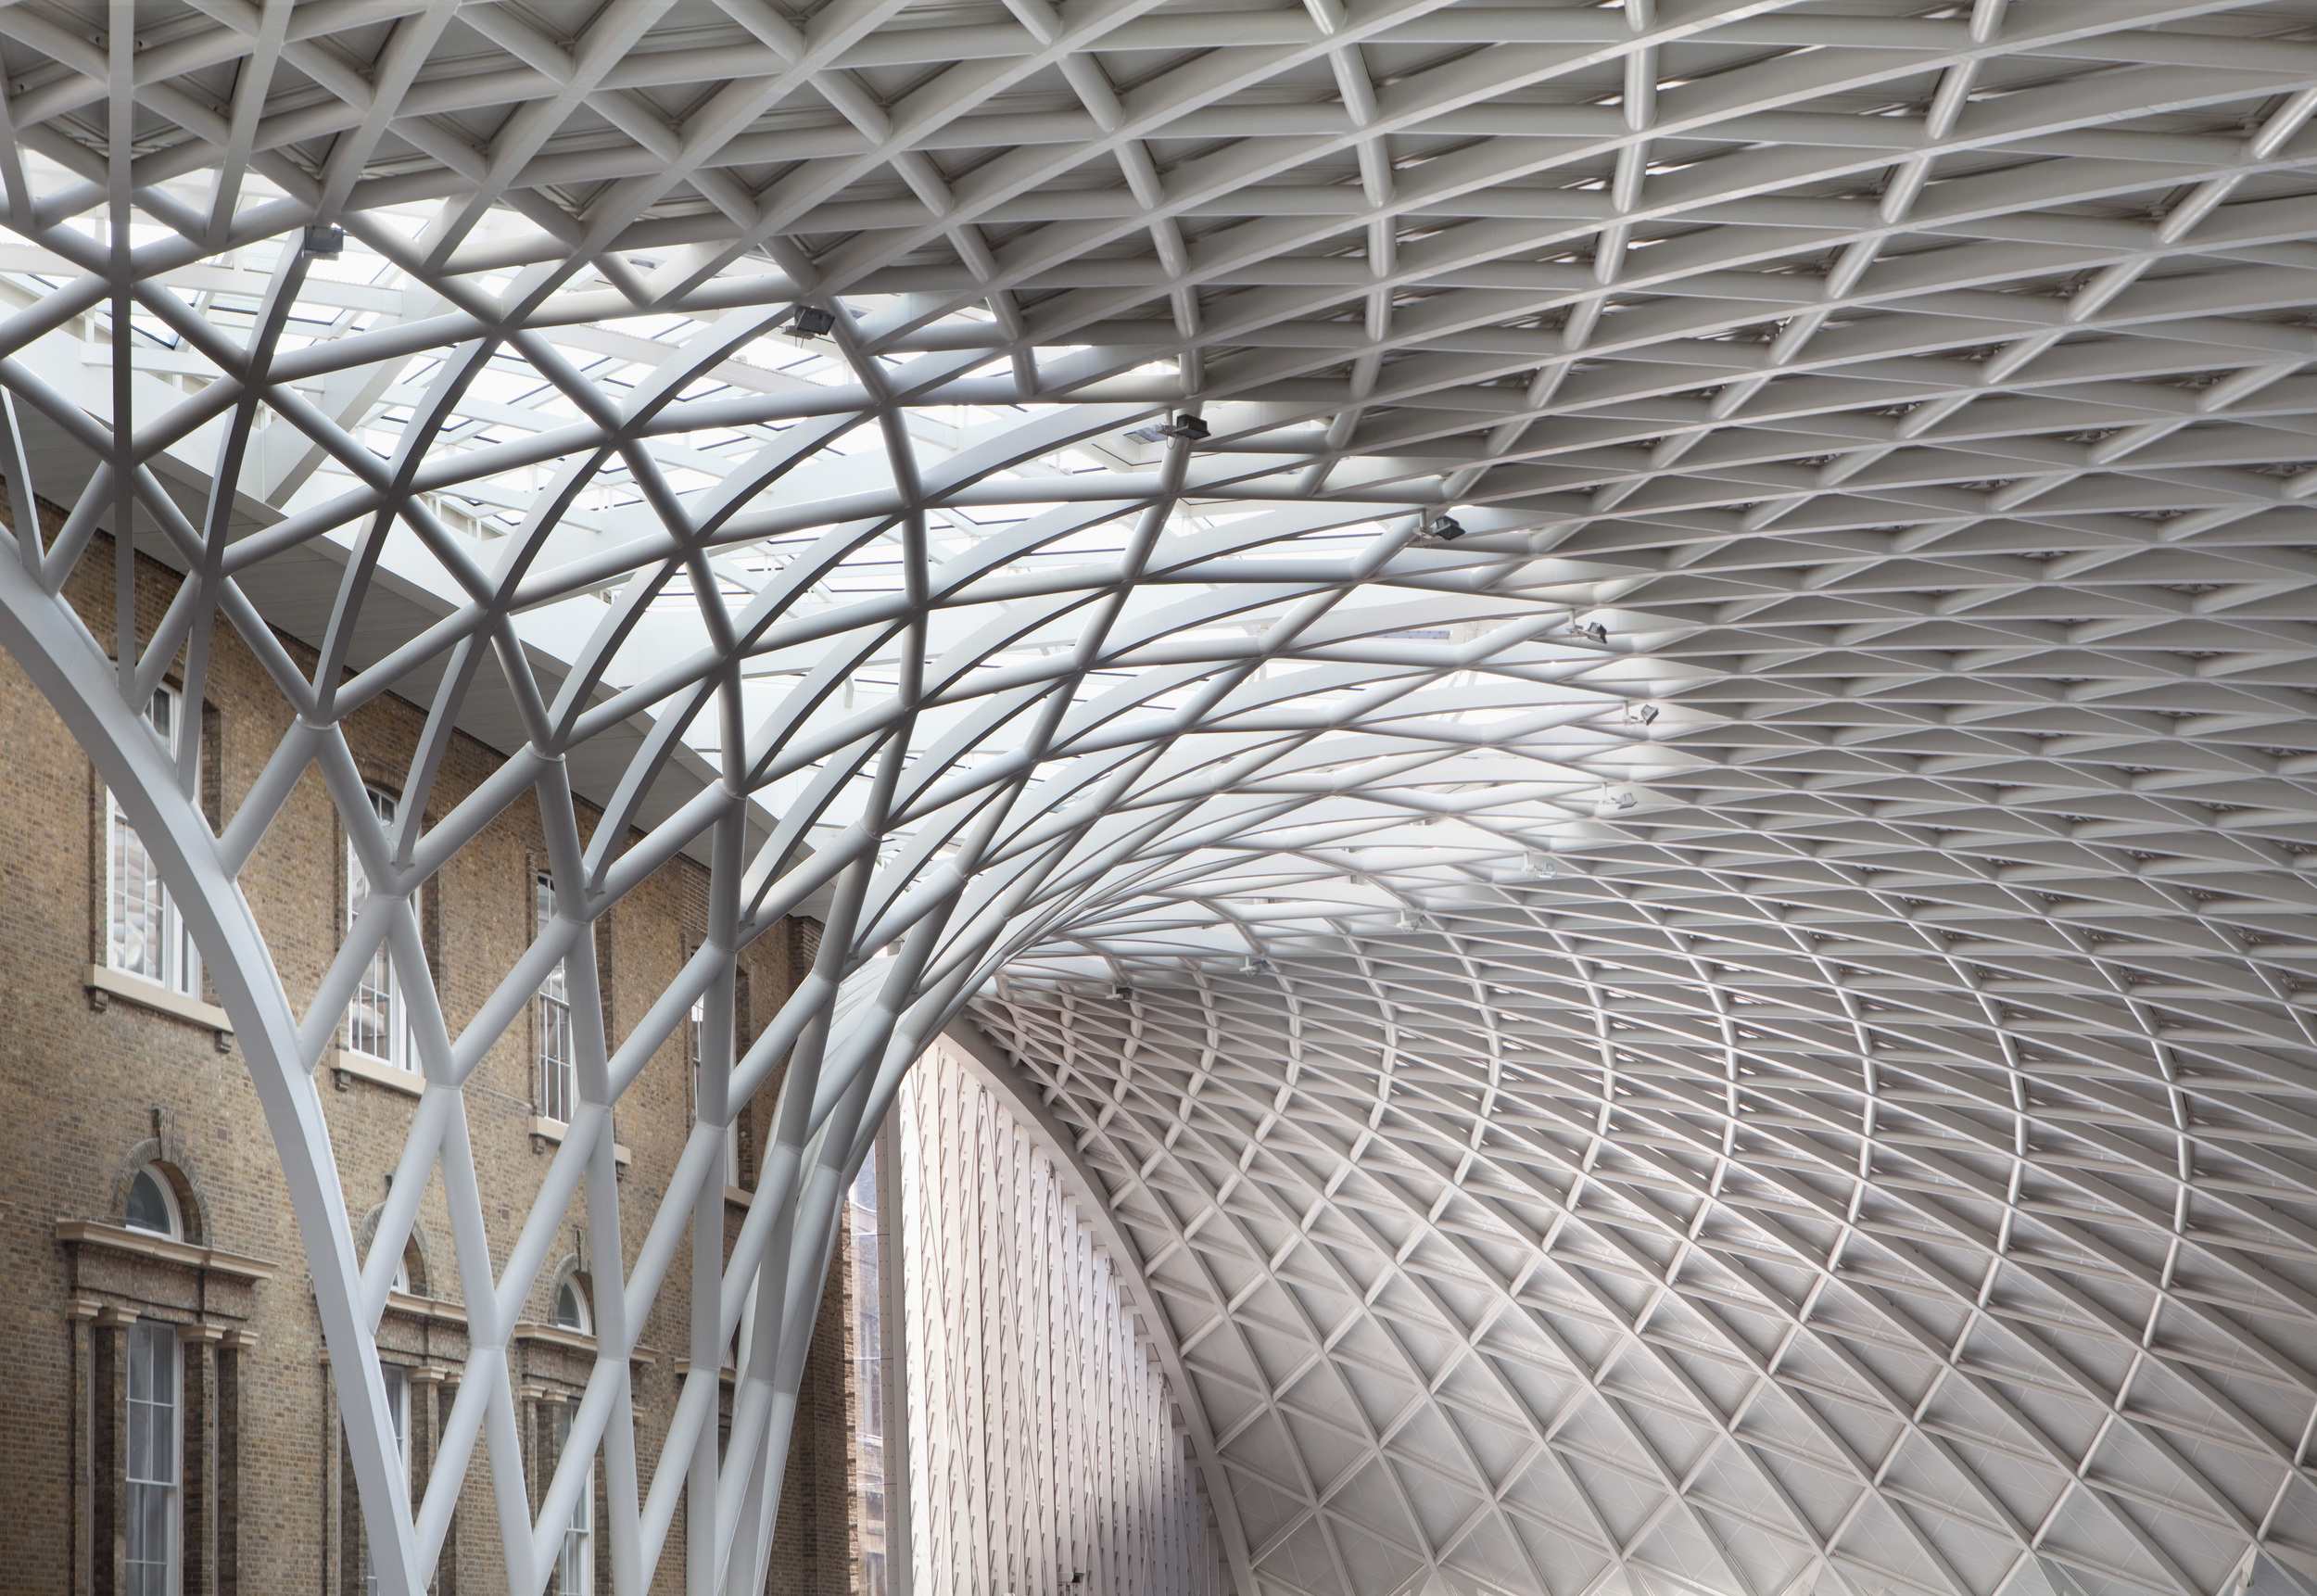 Western Concourse, King's CrossNetwork Rail